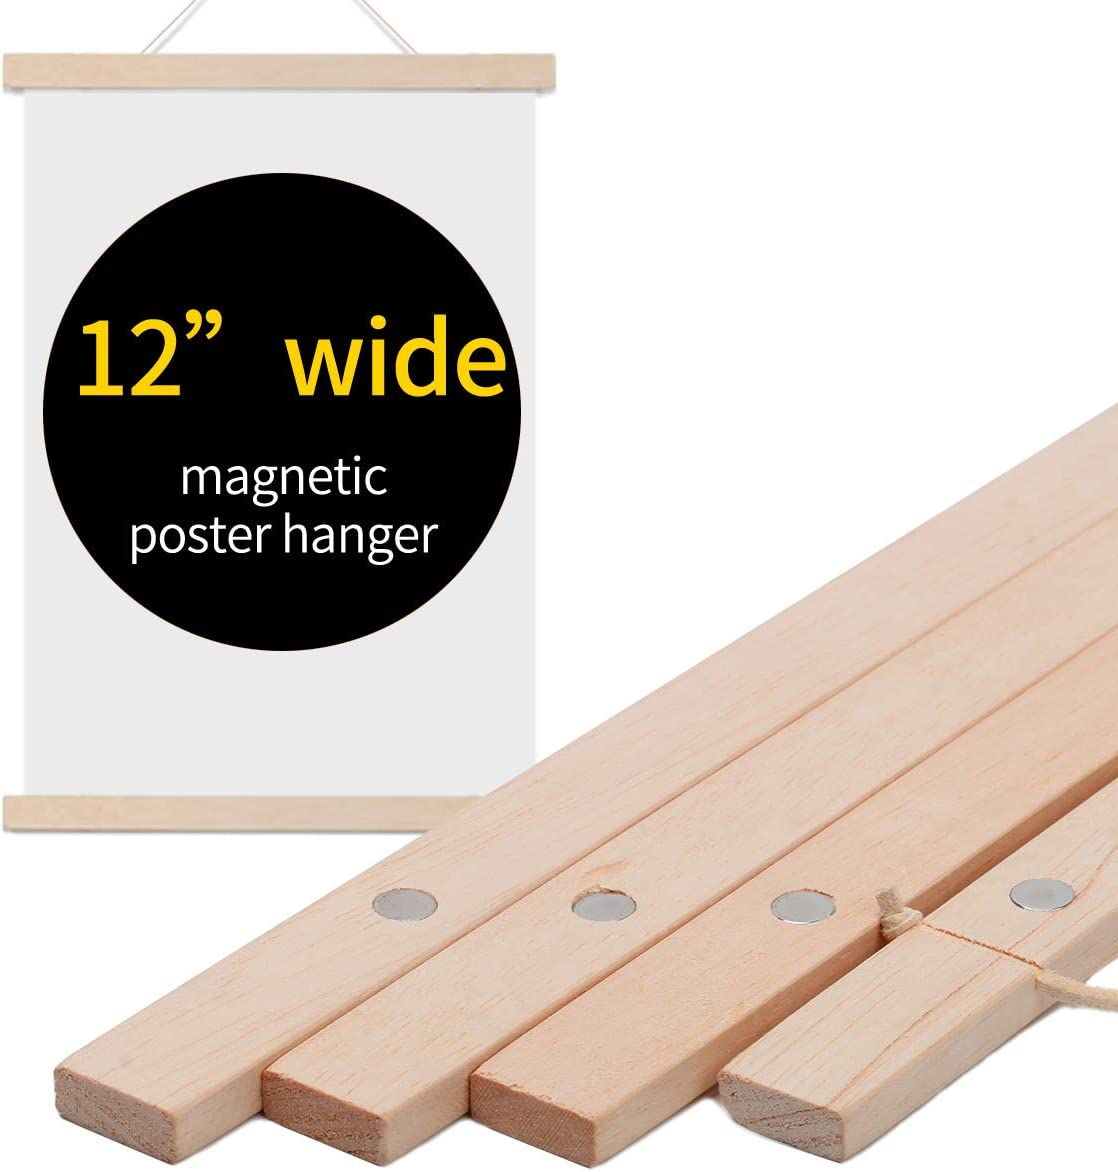 Kids Paintings Photos WITCOLOR Magnetic//Poster Frame/Hanger,9x24 9x12 9x11 Magnet Poster Hanger for Posters Canvas/Art/Works/and/Art/Prints Picture Scrolls 9, Black Maps